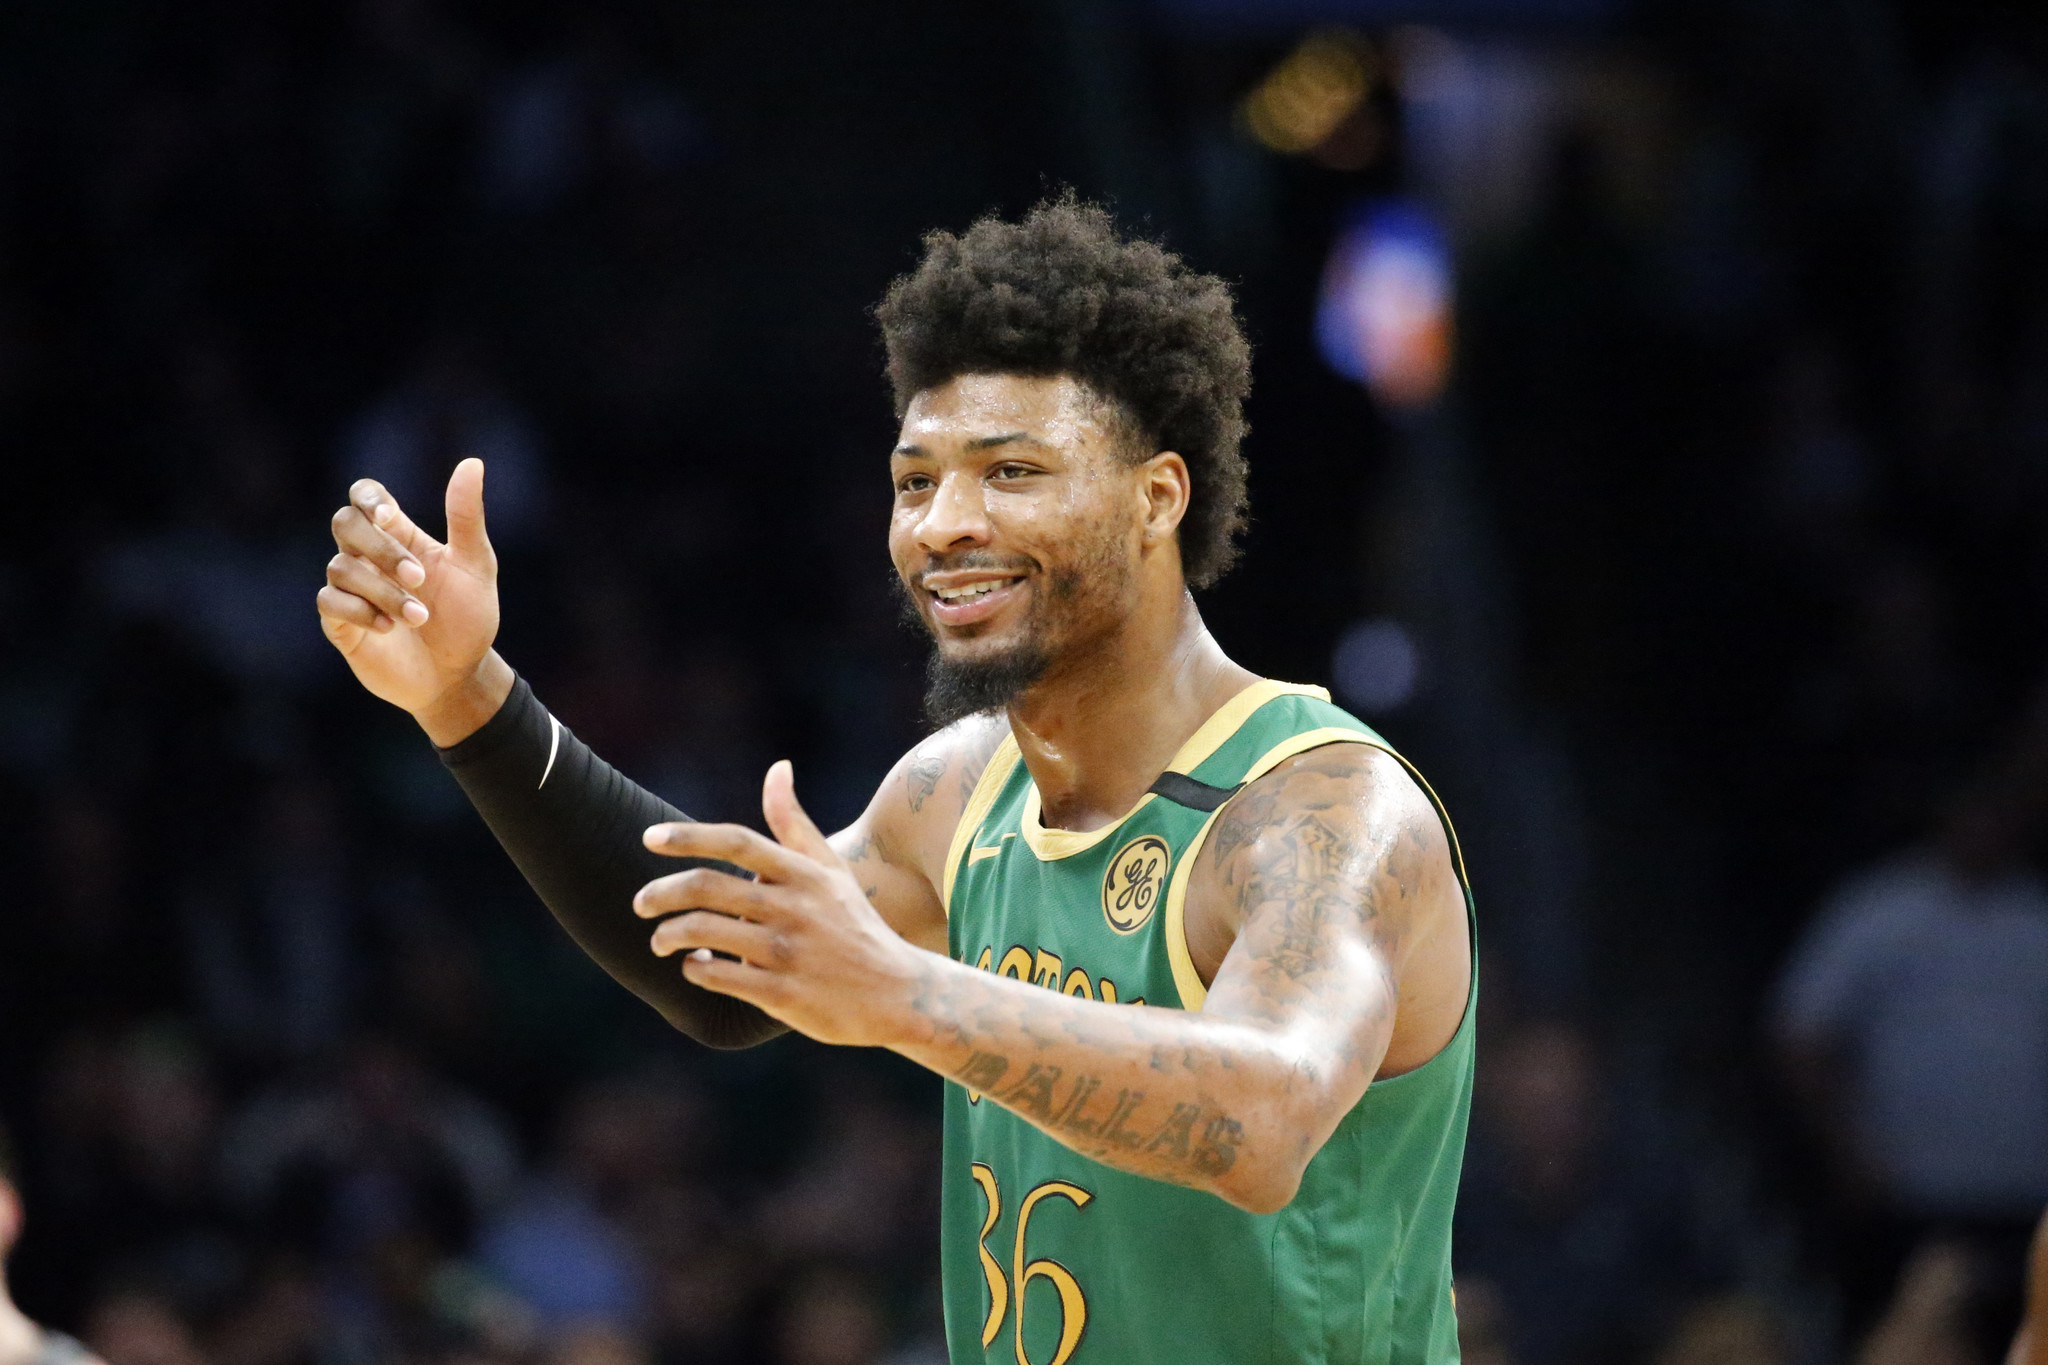 Boston Celtics guard Marcus Smart to donate plasma for coronavirus research